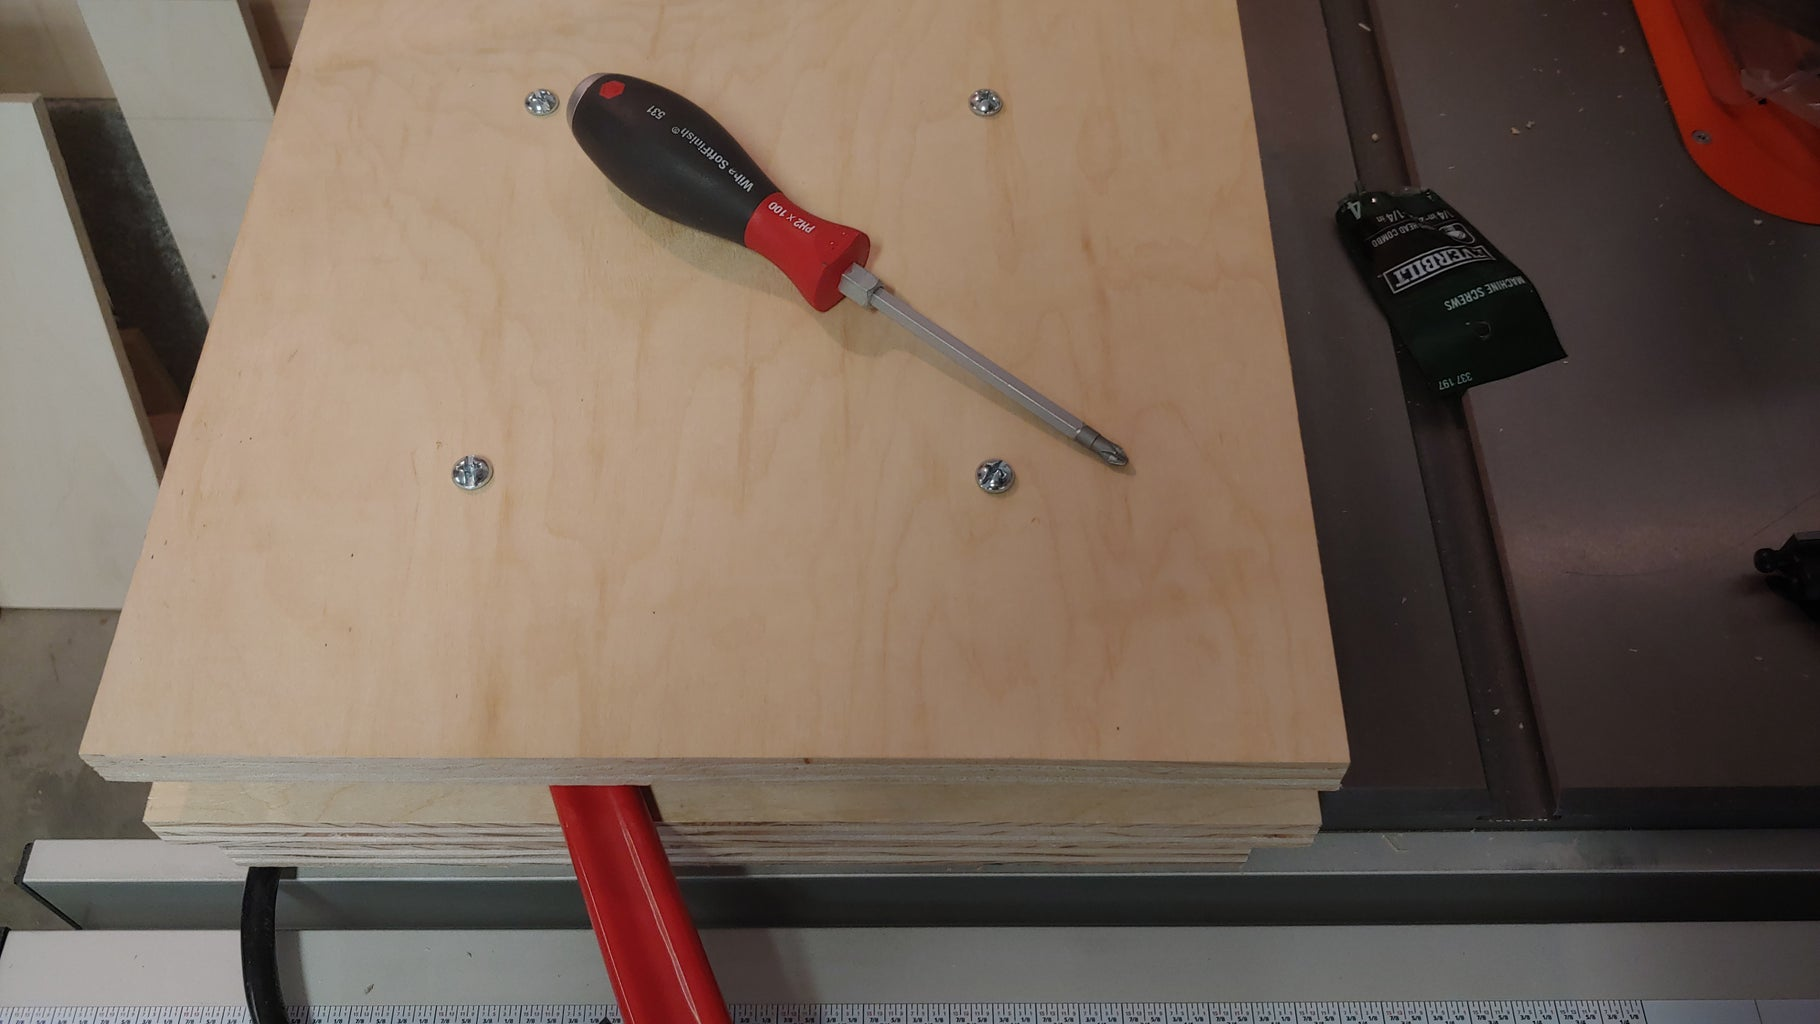 Step 3: Mount the Top Piece to the Swivel Base